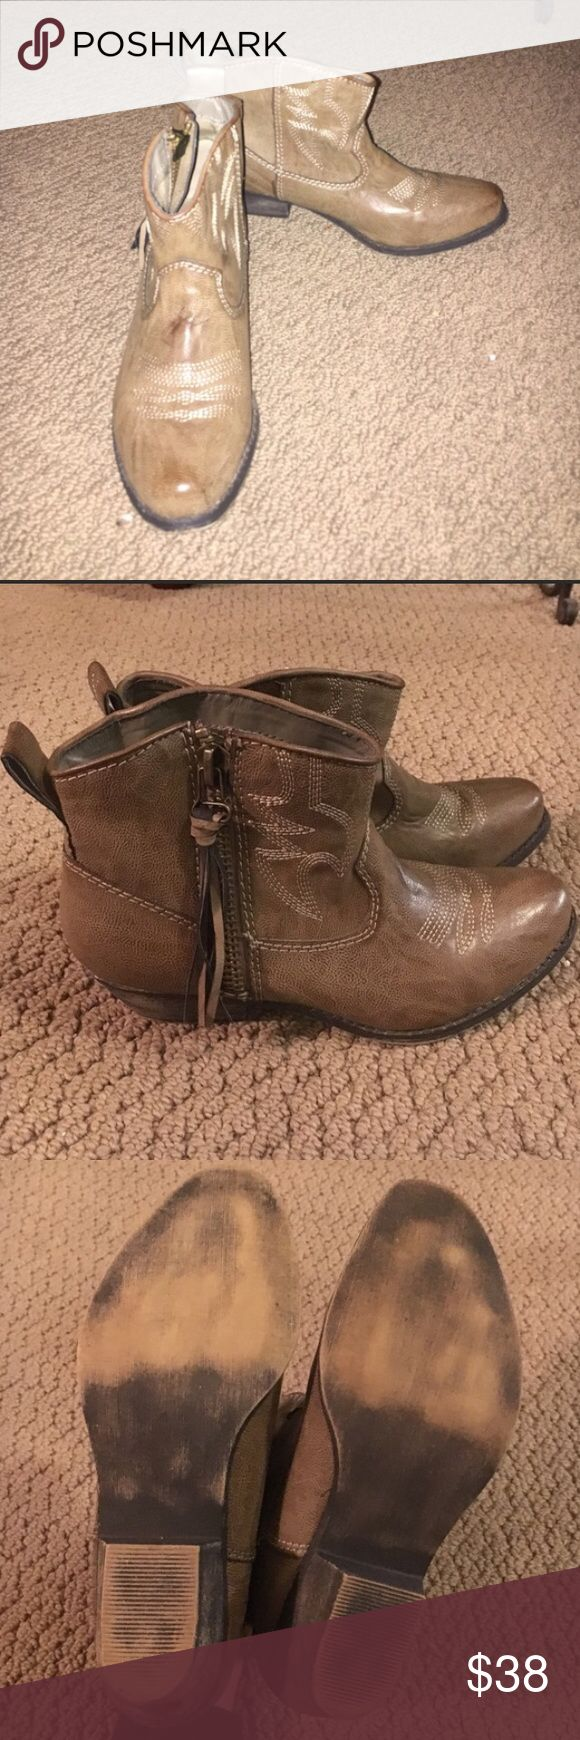 Big Buddha tan cowgirl booties Cute tan cowgirl booties from Big Buddha! Only worn once Big Buddha Shoes Ankle Boots & Booties